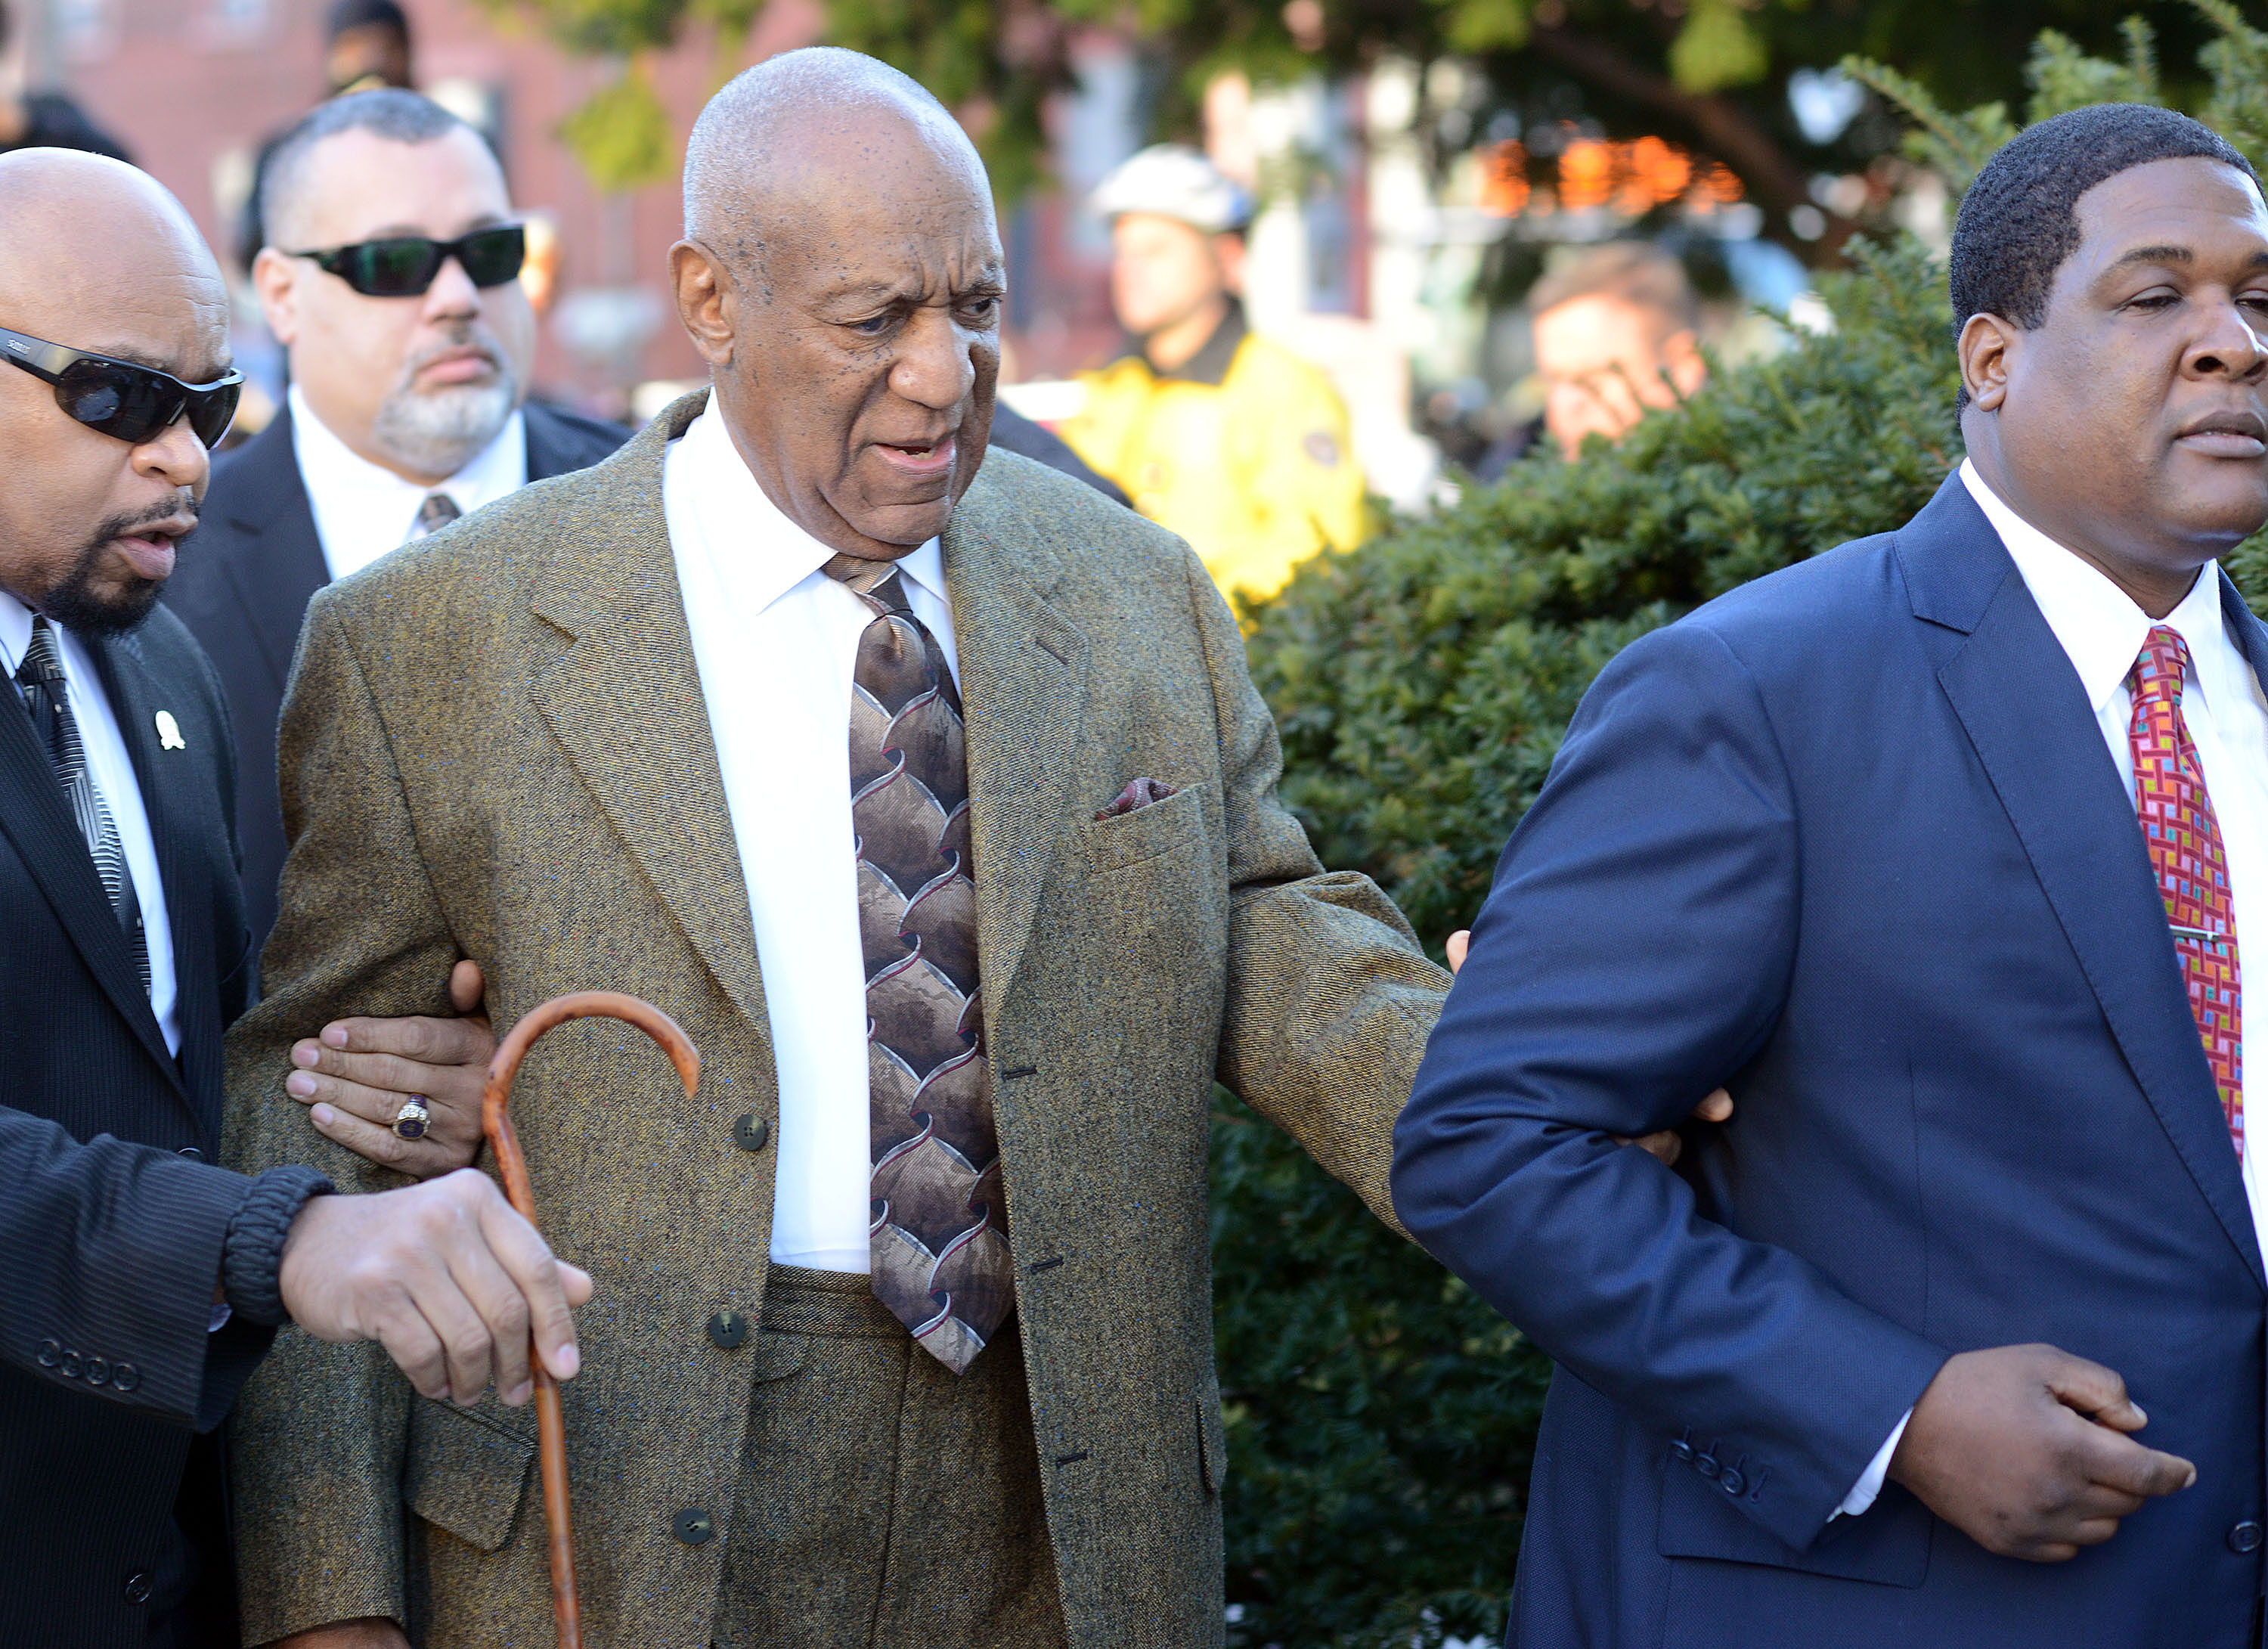 Comedian Bill Cosby (center) arrives for a preliminary hearing for sexual assault charges February 2, 2016, at the Montgomery County Courthouse at the Montgomery County Courthouse in Norristown, Pennsylvania